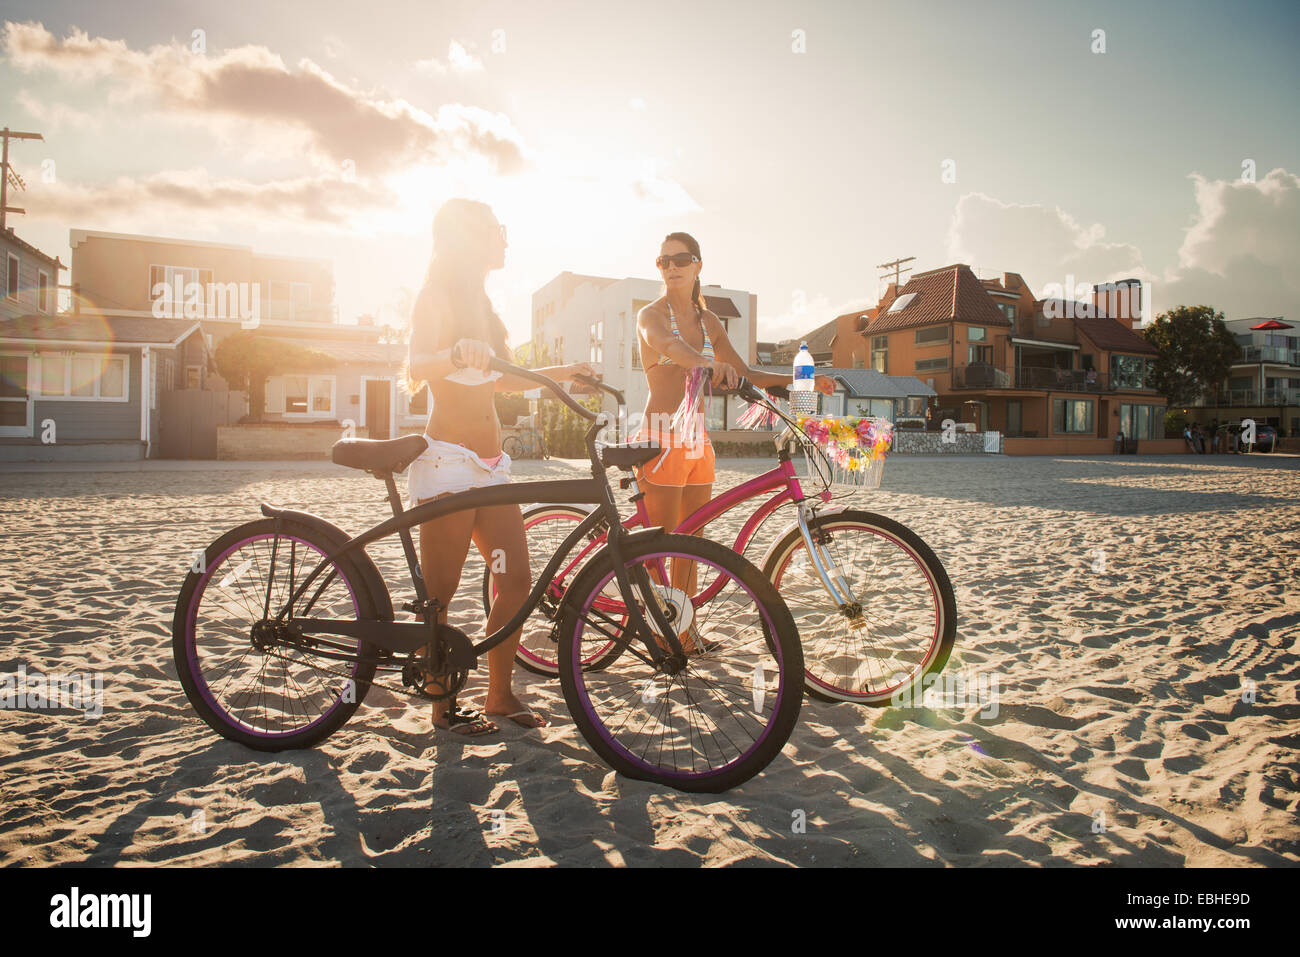 Two women cyclists chatting on beach, Mission Bay, San Diego, California, USA - Stock Image